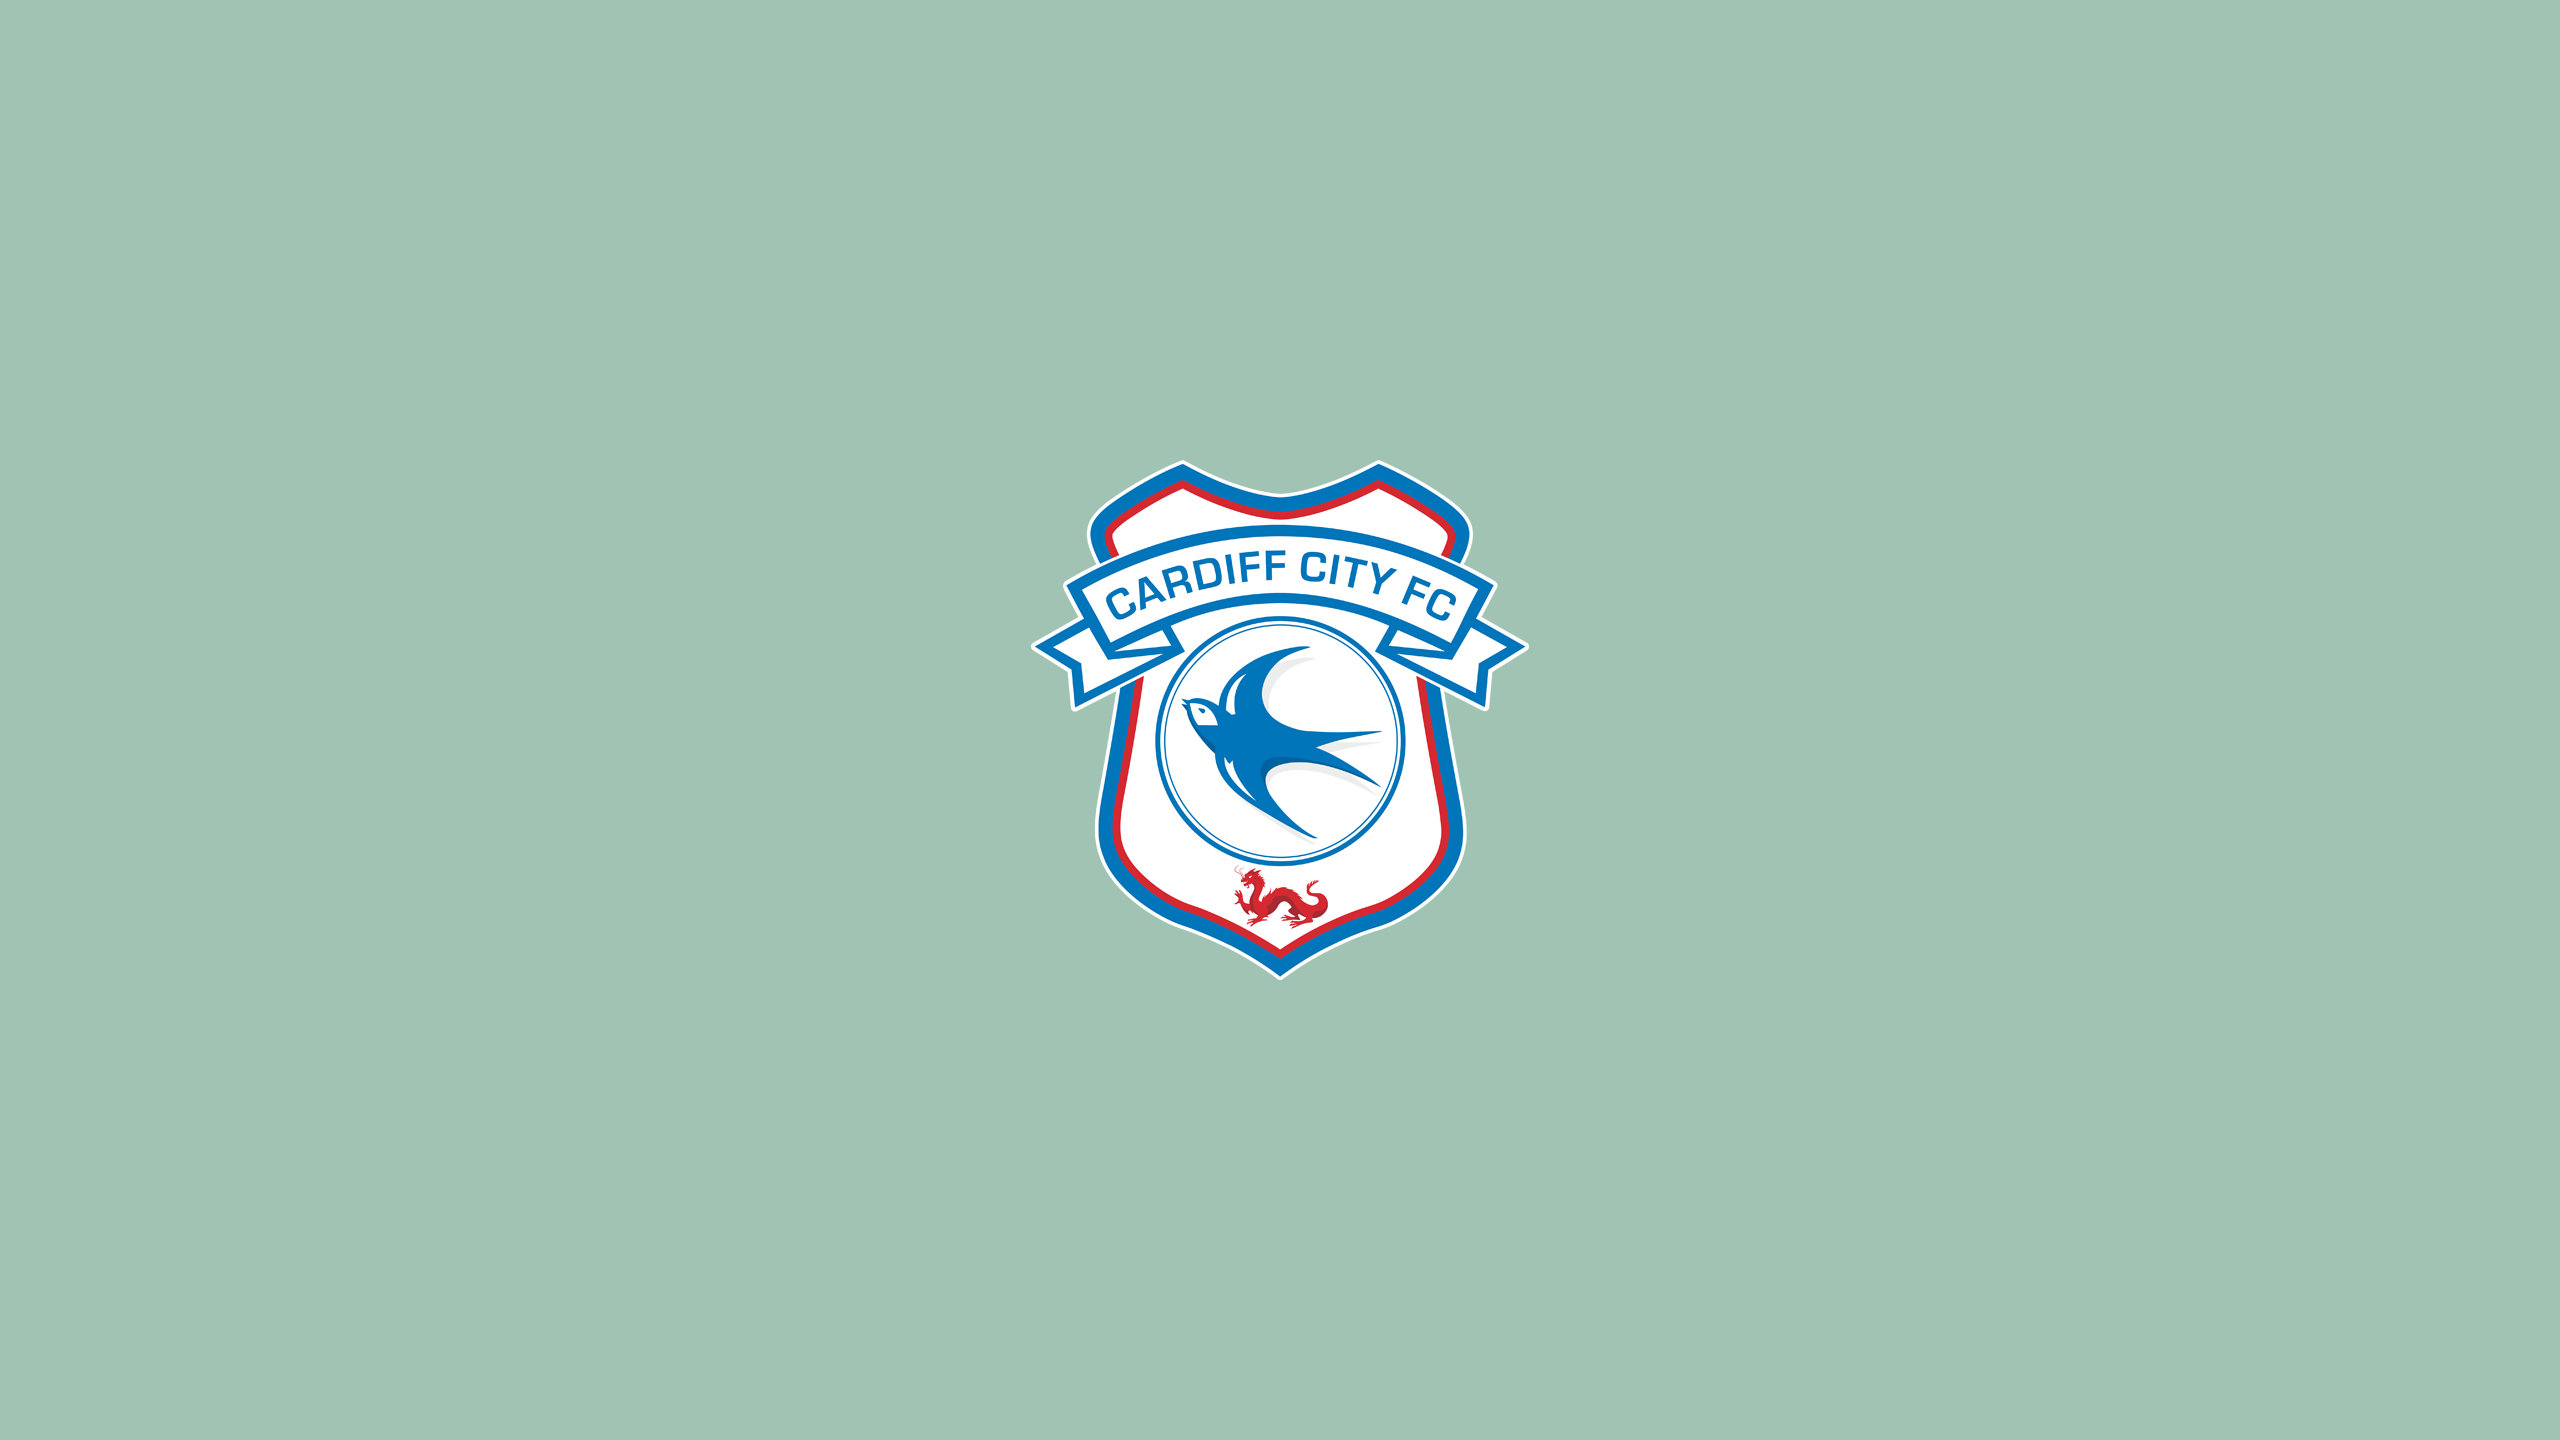 Cardiff City FC (Third)